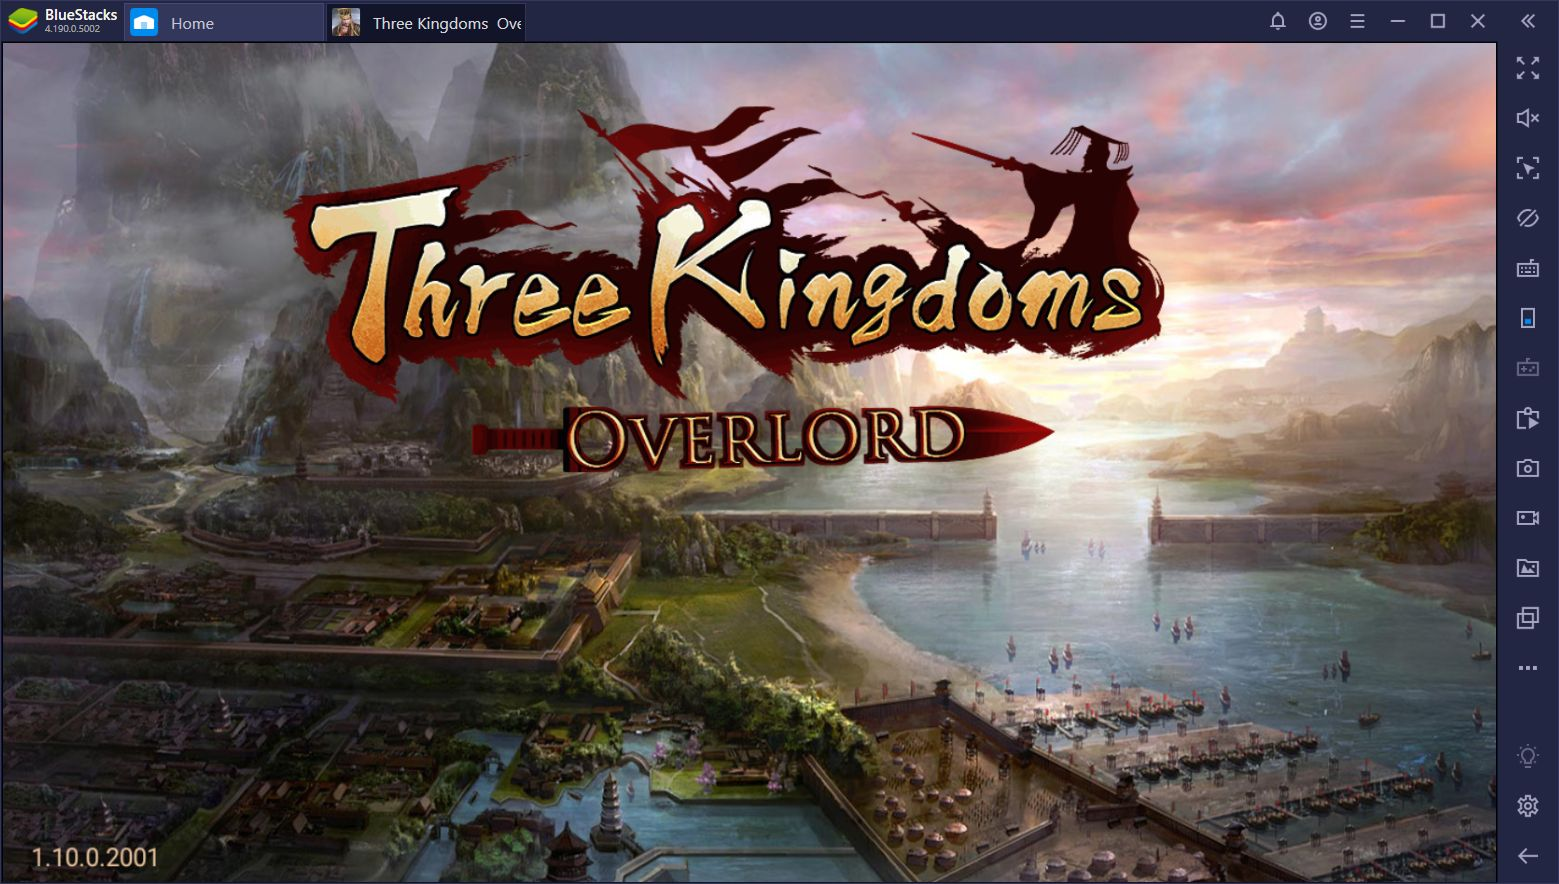 Three Kingdoms: Overlord – Beginner's Guide on Founding and Expanding Your Empire